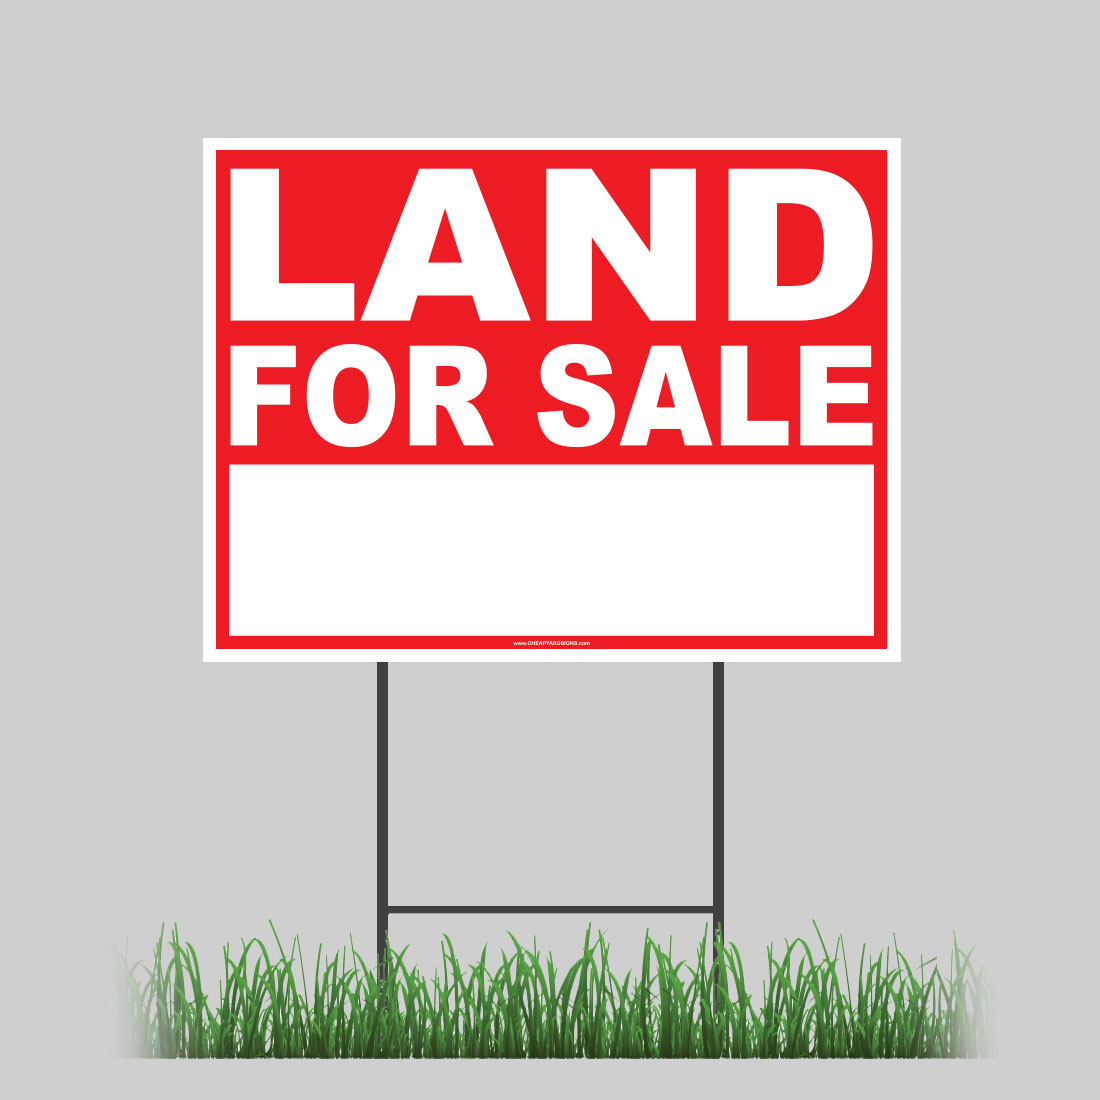 Details about large outdoor 24x18 land for sale yard sign with ground stake